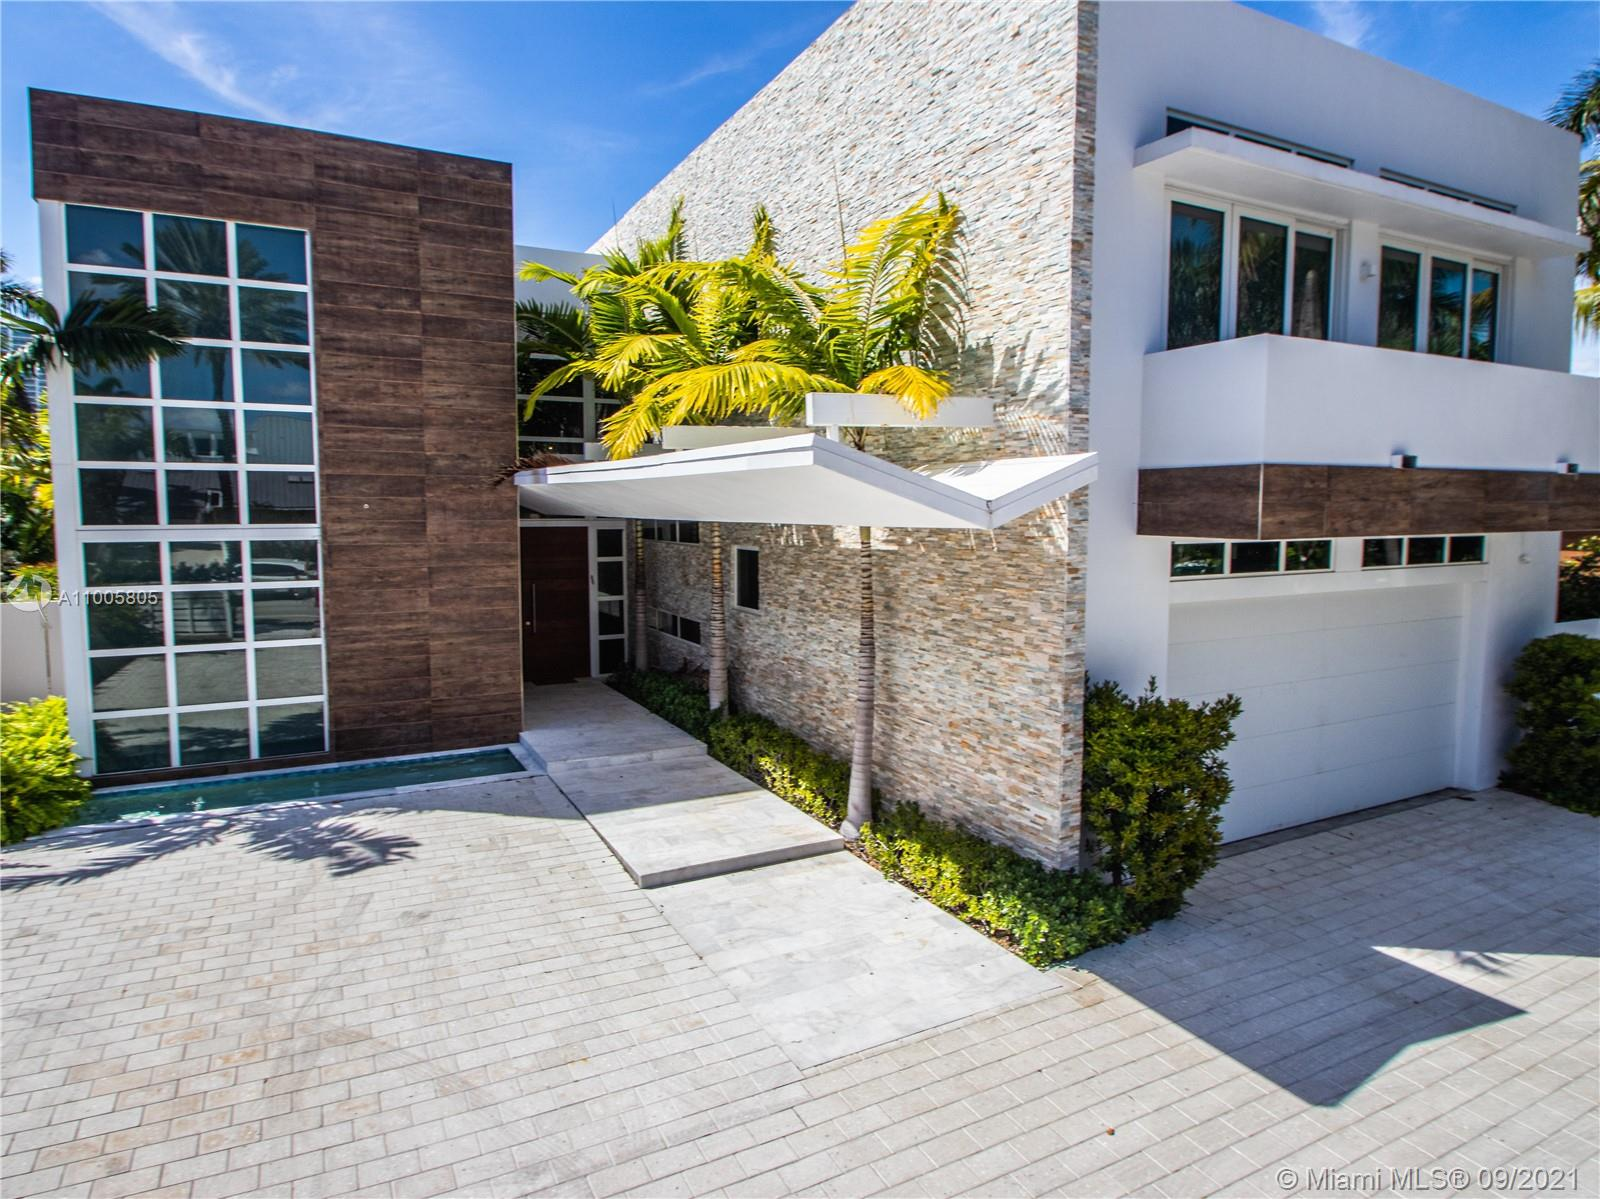 Ultra luxury newly built 2018 mansion in the heart of prestigious city of Golden Beach. Featuring 5 bedrooms, 5.5 Bathrooms with a total of 5,199sft under A/C , property is tastefully finished and fully furnished -Turnkey condition. Chef's kitchen, Breakfast/Dining area, Formal Dining Area, High Ceiling, Entertainment area , Gorgeous Backyard and Pool and many more. Extremely spacious driveway in addition to 2 covered car garage. House is located only steps from the ocean, places of worships and many more point of interest.